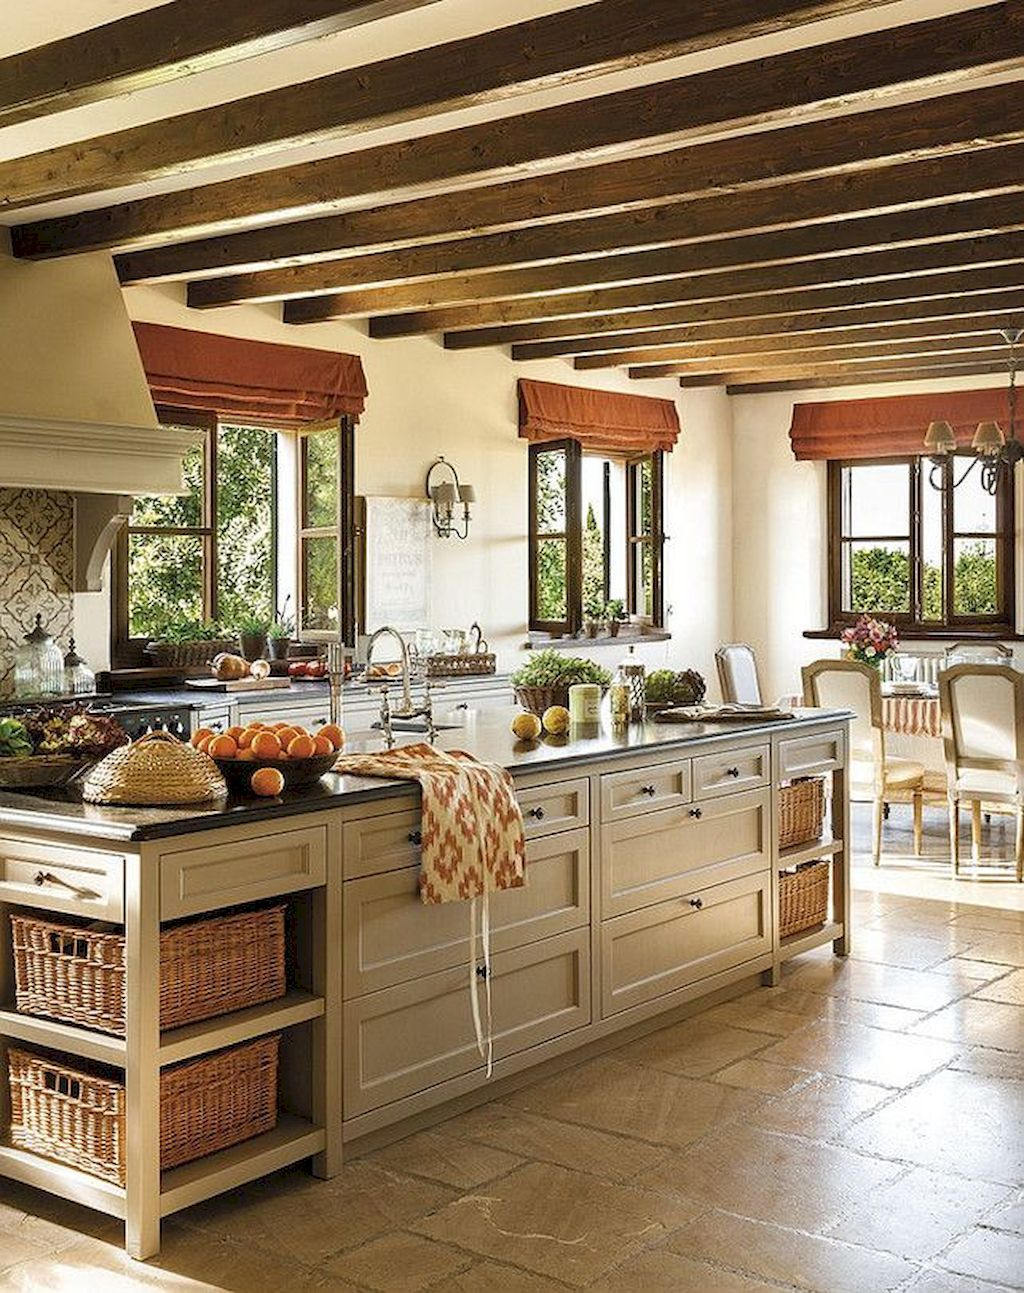 fancy french country kitchen design ideas decor fab home ideas